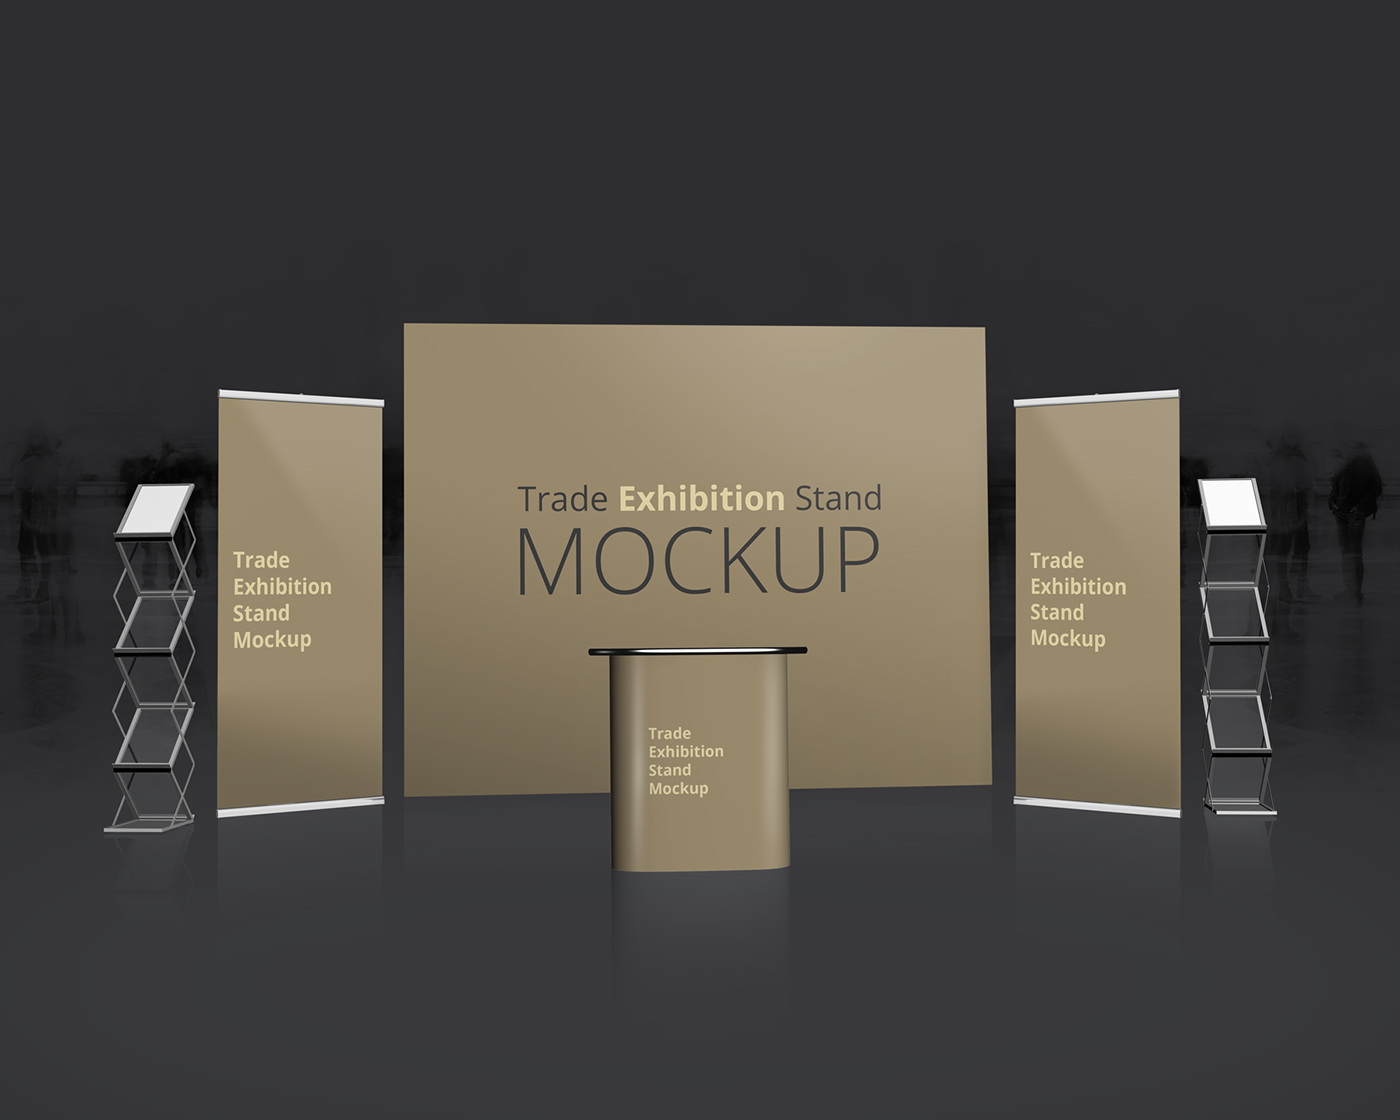 Exhibition Stall Mockup : Trade exhibition stand mockup on behance